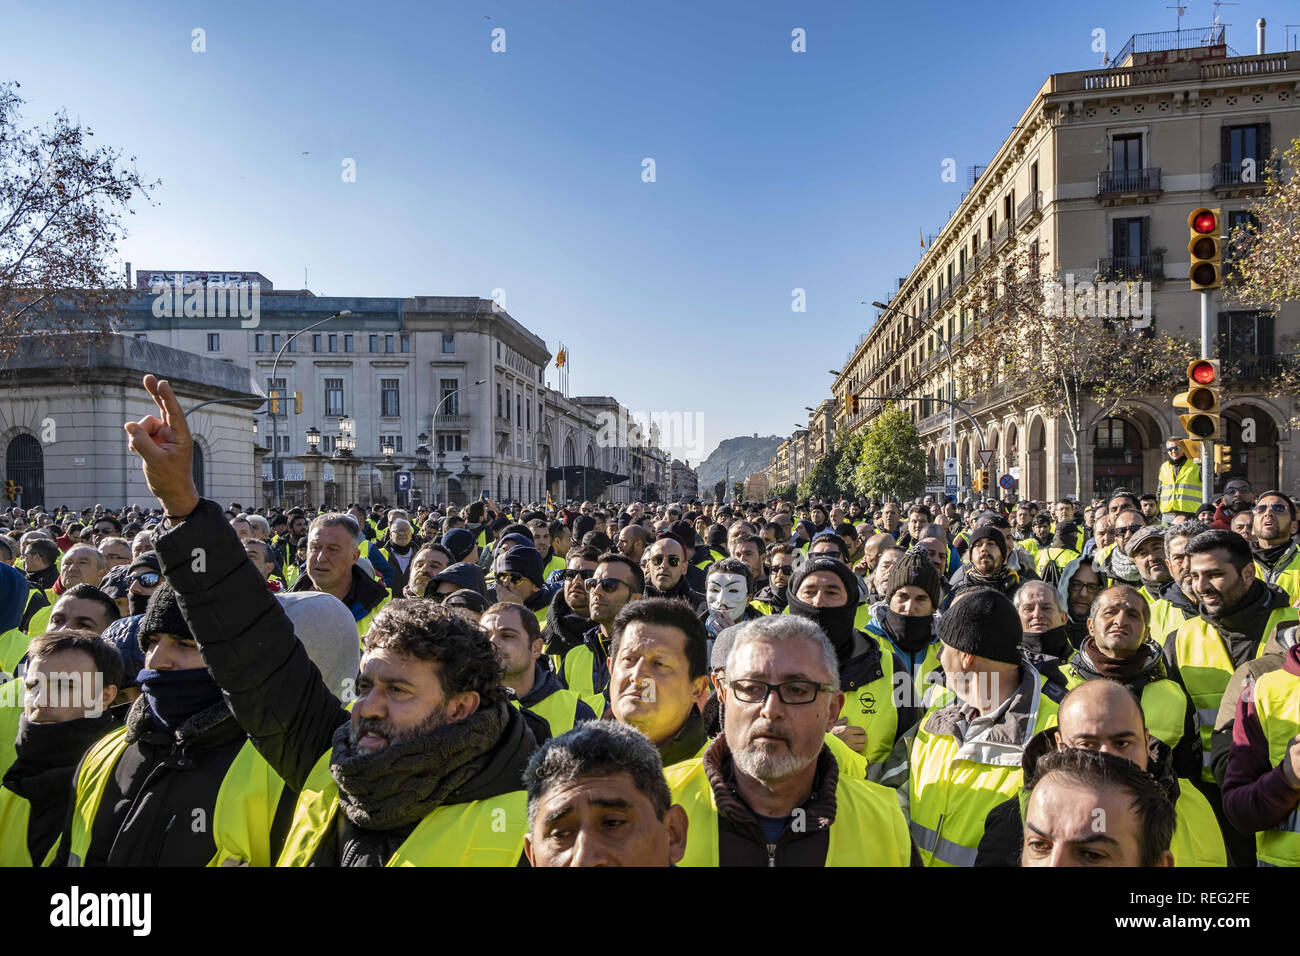 Barcelona, Catalonia, Spain. 21st Jan, 2019. A crowd of taxi drivers with yellow vests are seen gathering in front of the Parliament of Catalonia during the strike.Fourth day strike, After not being received in the Parliament of Catalonia, the taxi drivers in demonstration have cut off traffic from Ronda del Litoral route, The pre-reservation time of the VTC services (Uber and Cabify), which the Government wants to fix in 15 minutes and the unions in 12 hours, it is the strong point of the disagreement. Credit: Paco Freire/SOPA Images/ZUMA Wire/Alamy Live News Stock Photo